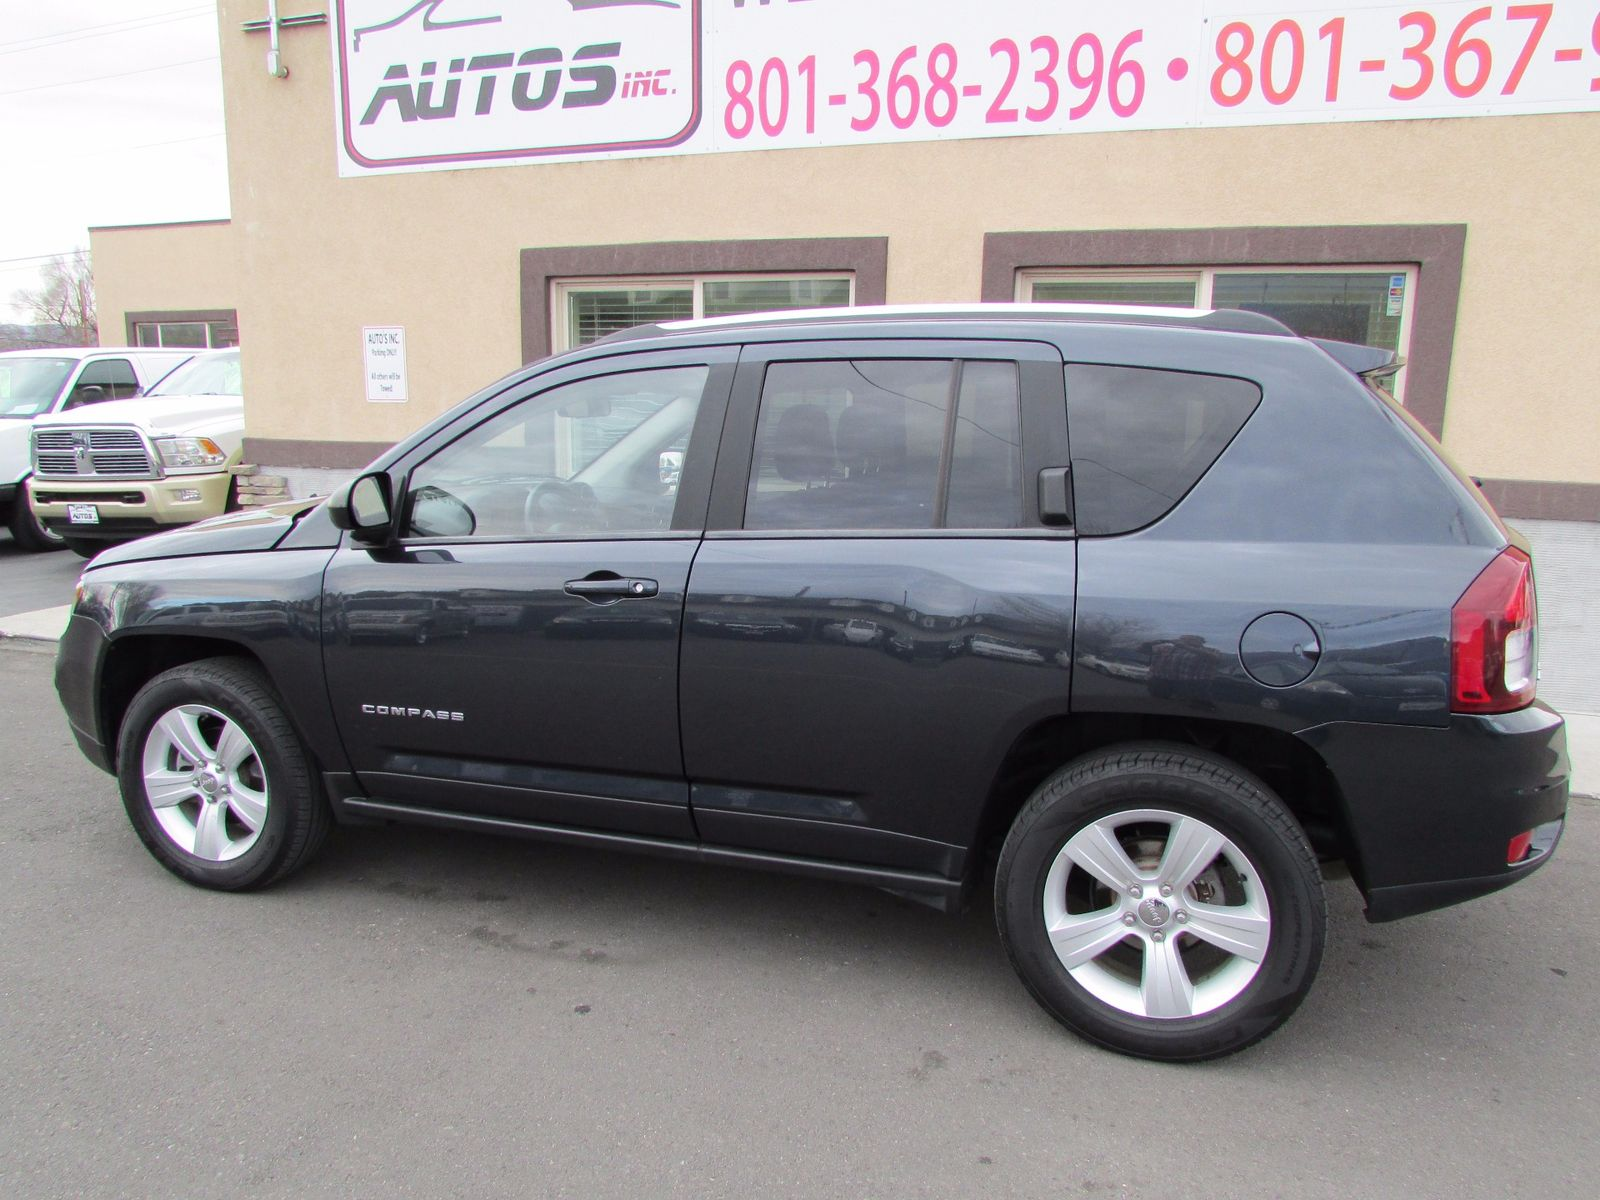 2014 Jeep pass 4x4 Sport city Utah Autos Inc